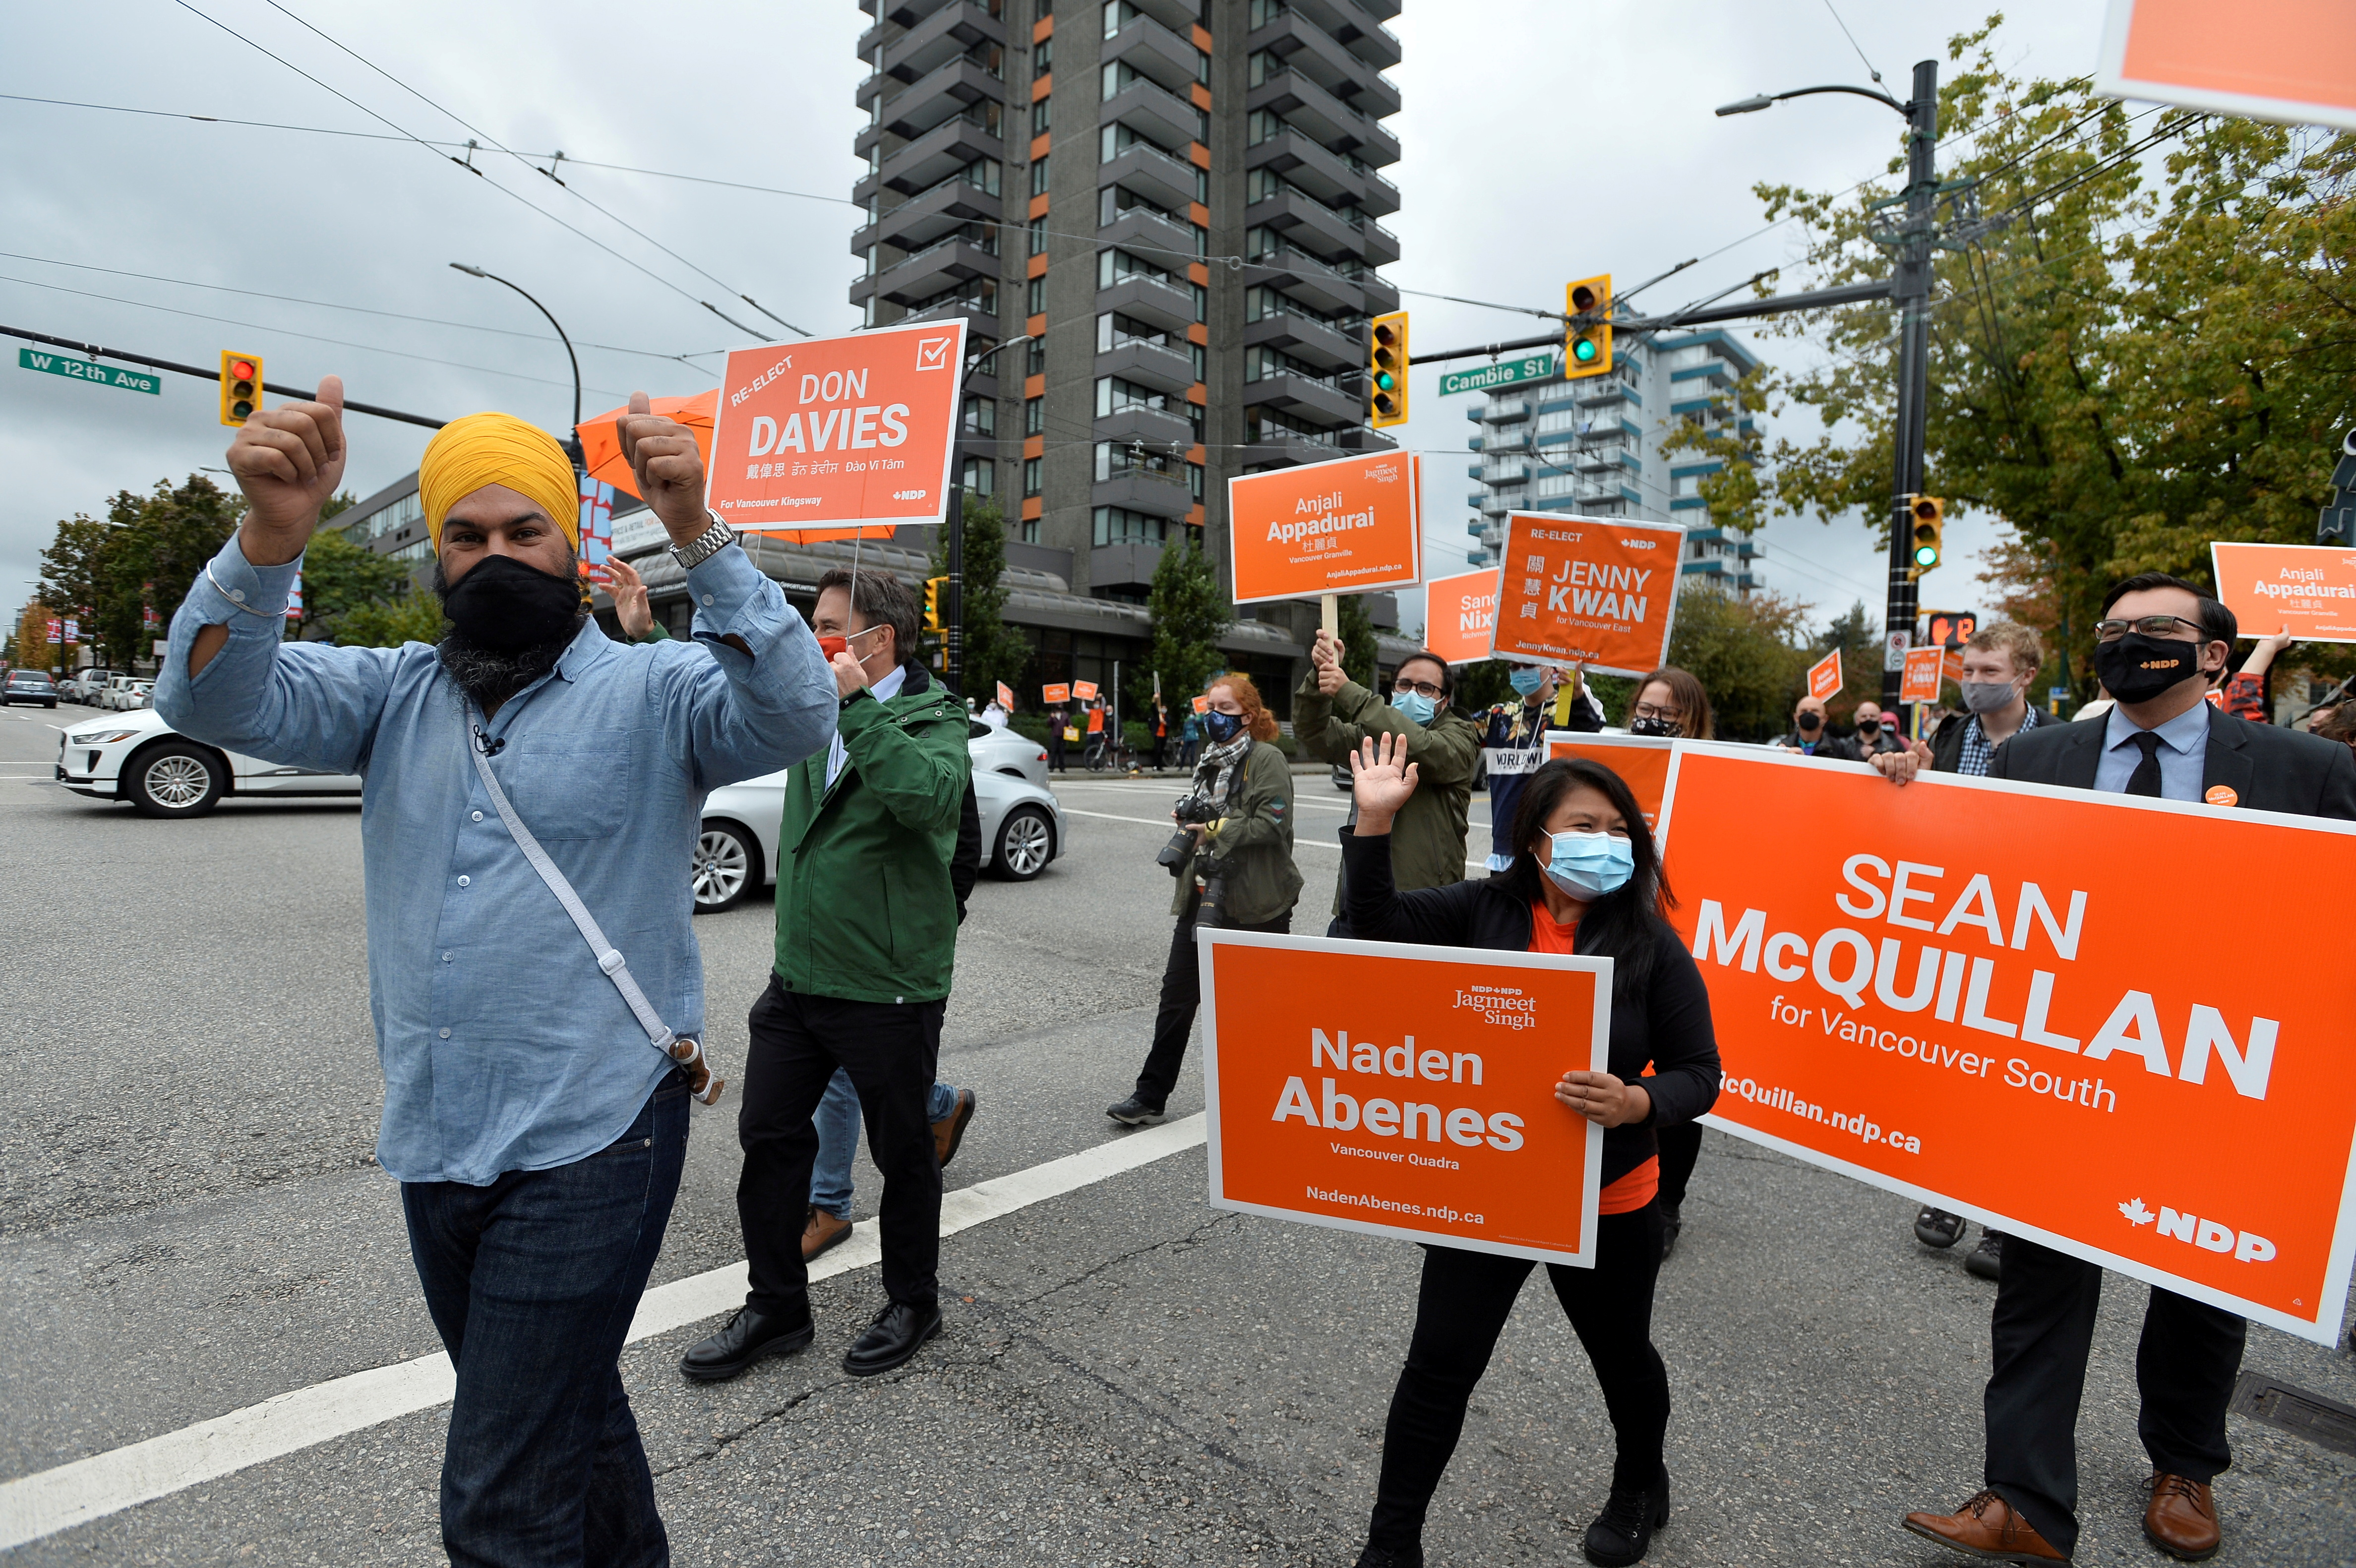 New Democratic Party (NDP) leader Jagmeet Singh meets with supporters during his election campaign tour in Vancouver, British Columbia, Canada September 19, 2021. REUTERS/Jennifer Gauthier/File Photo